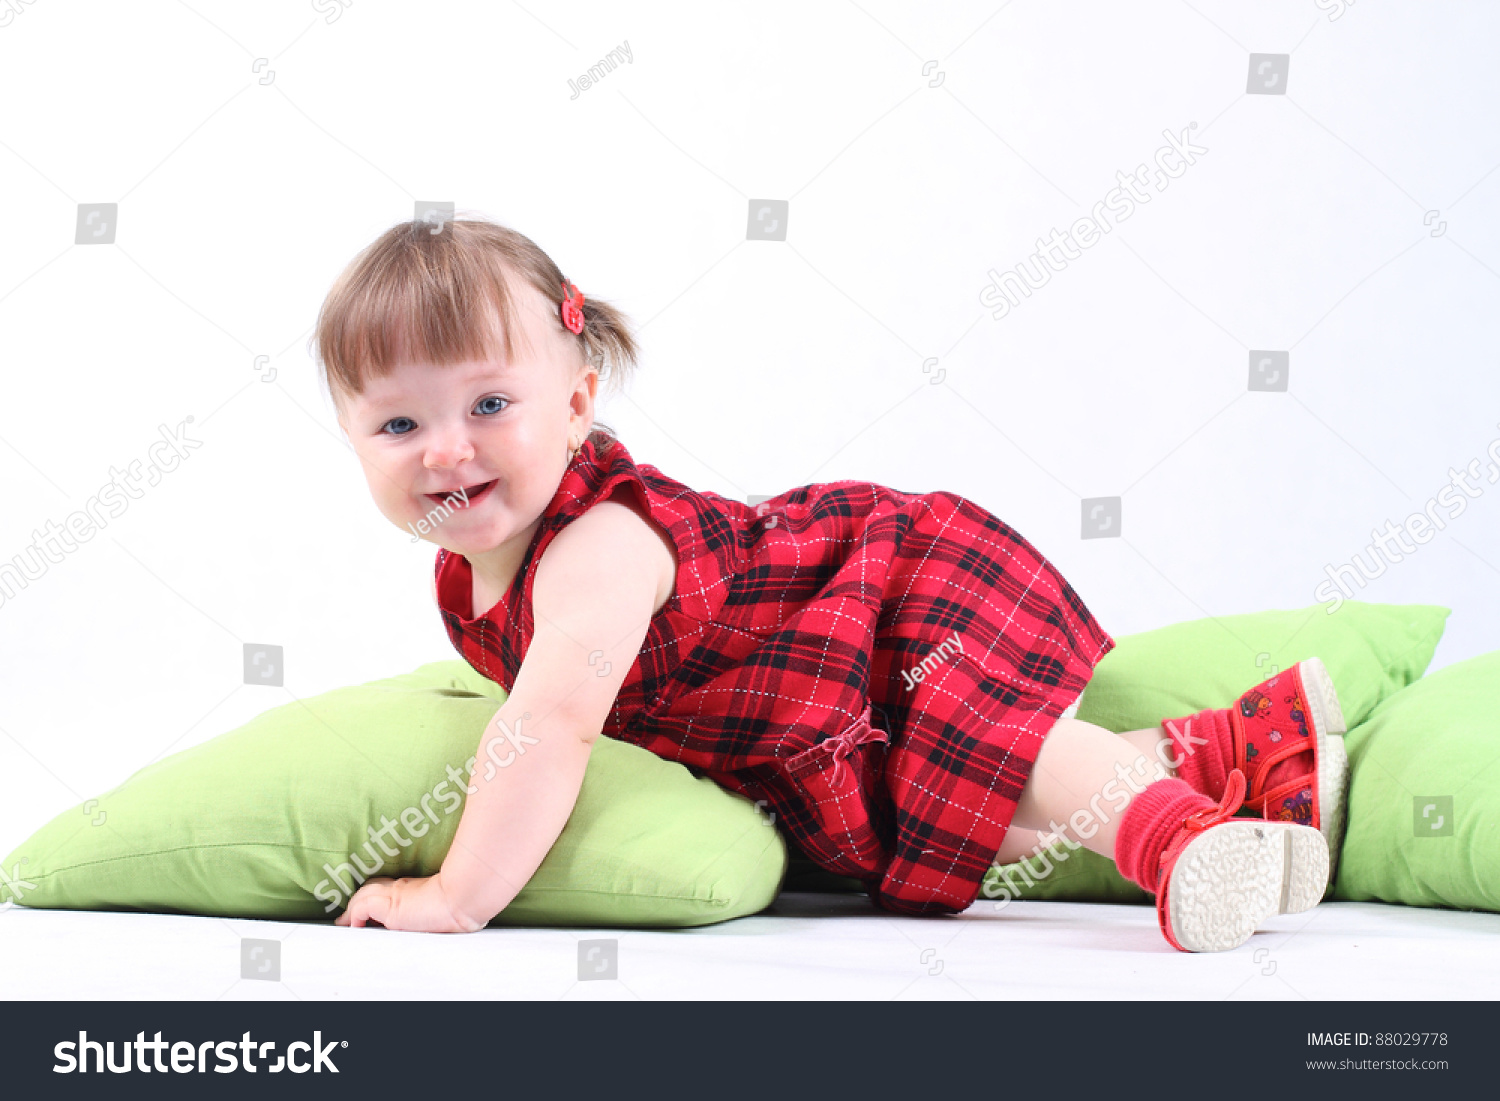 Download image 18 month old baby girl pc android iphone and ipad